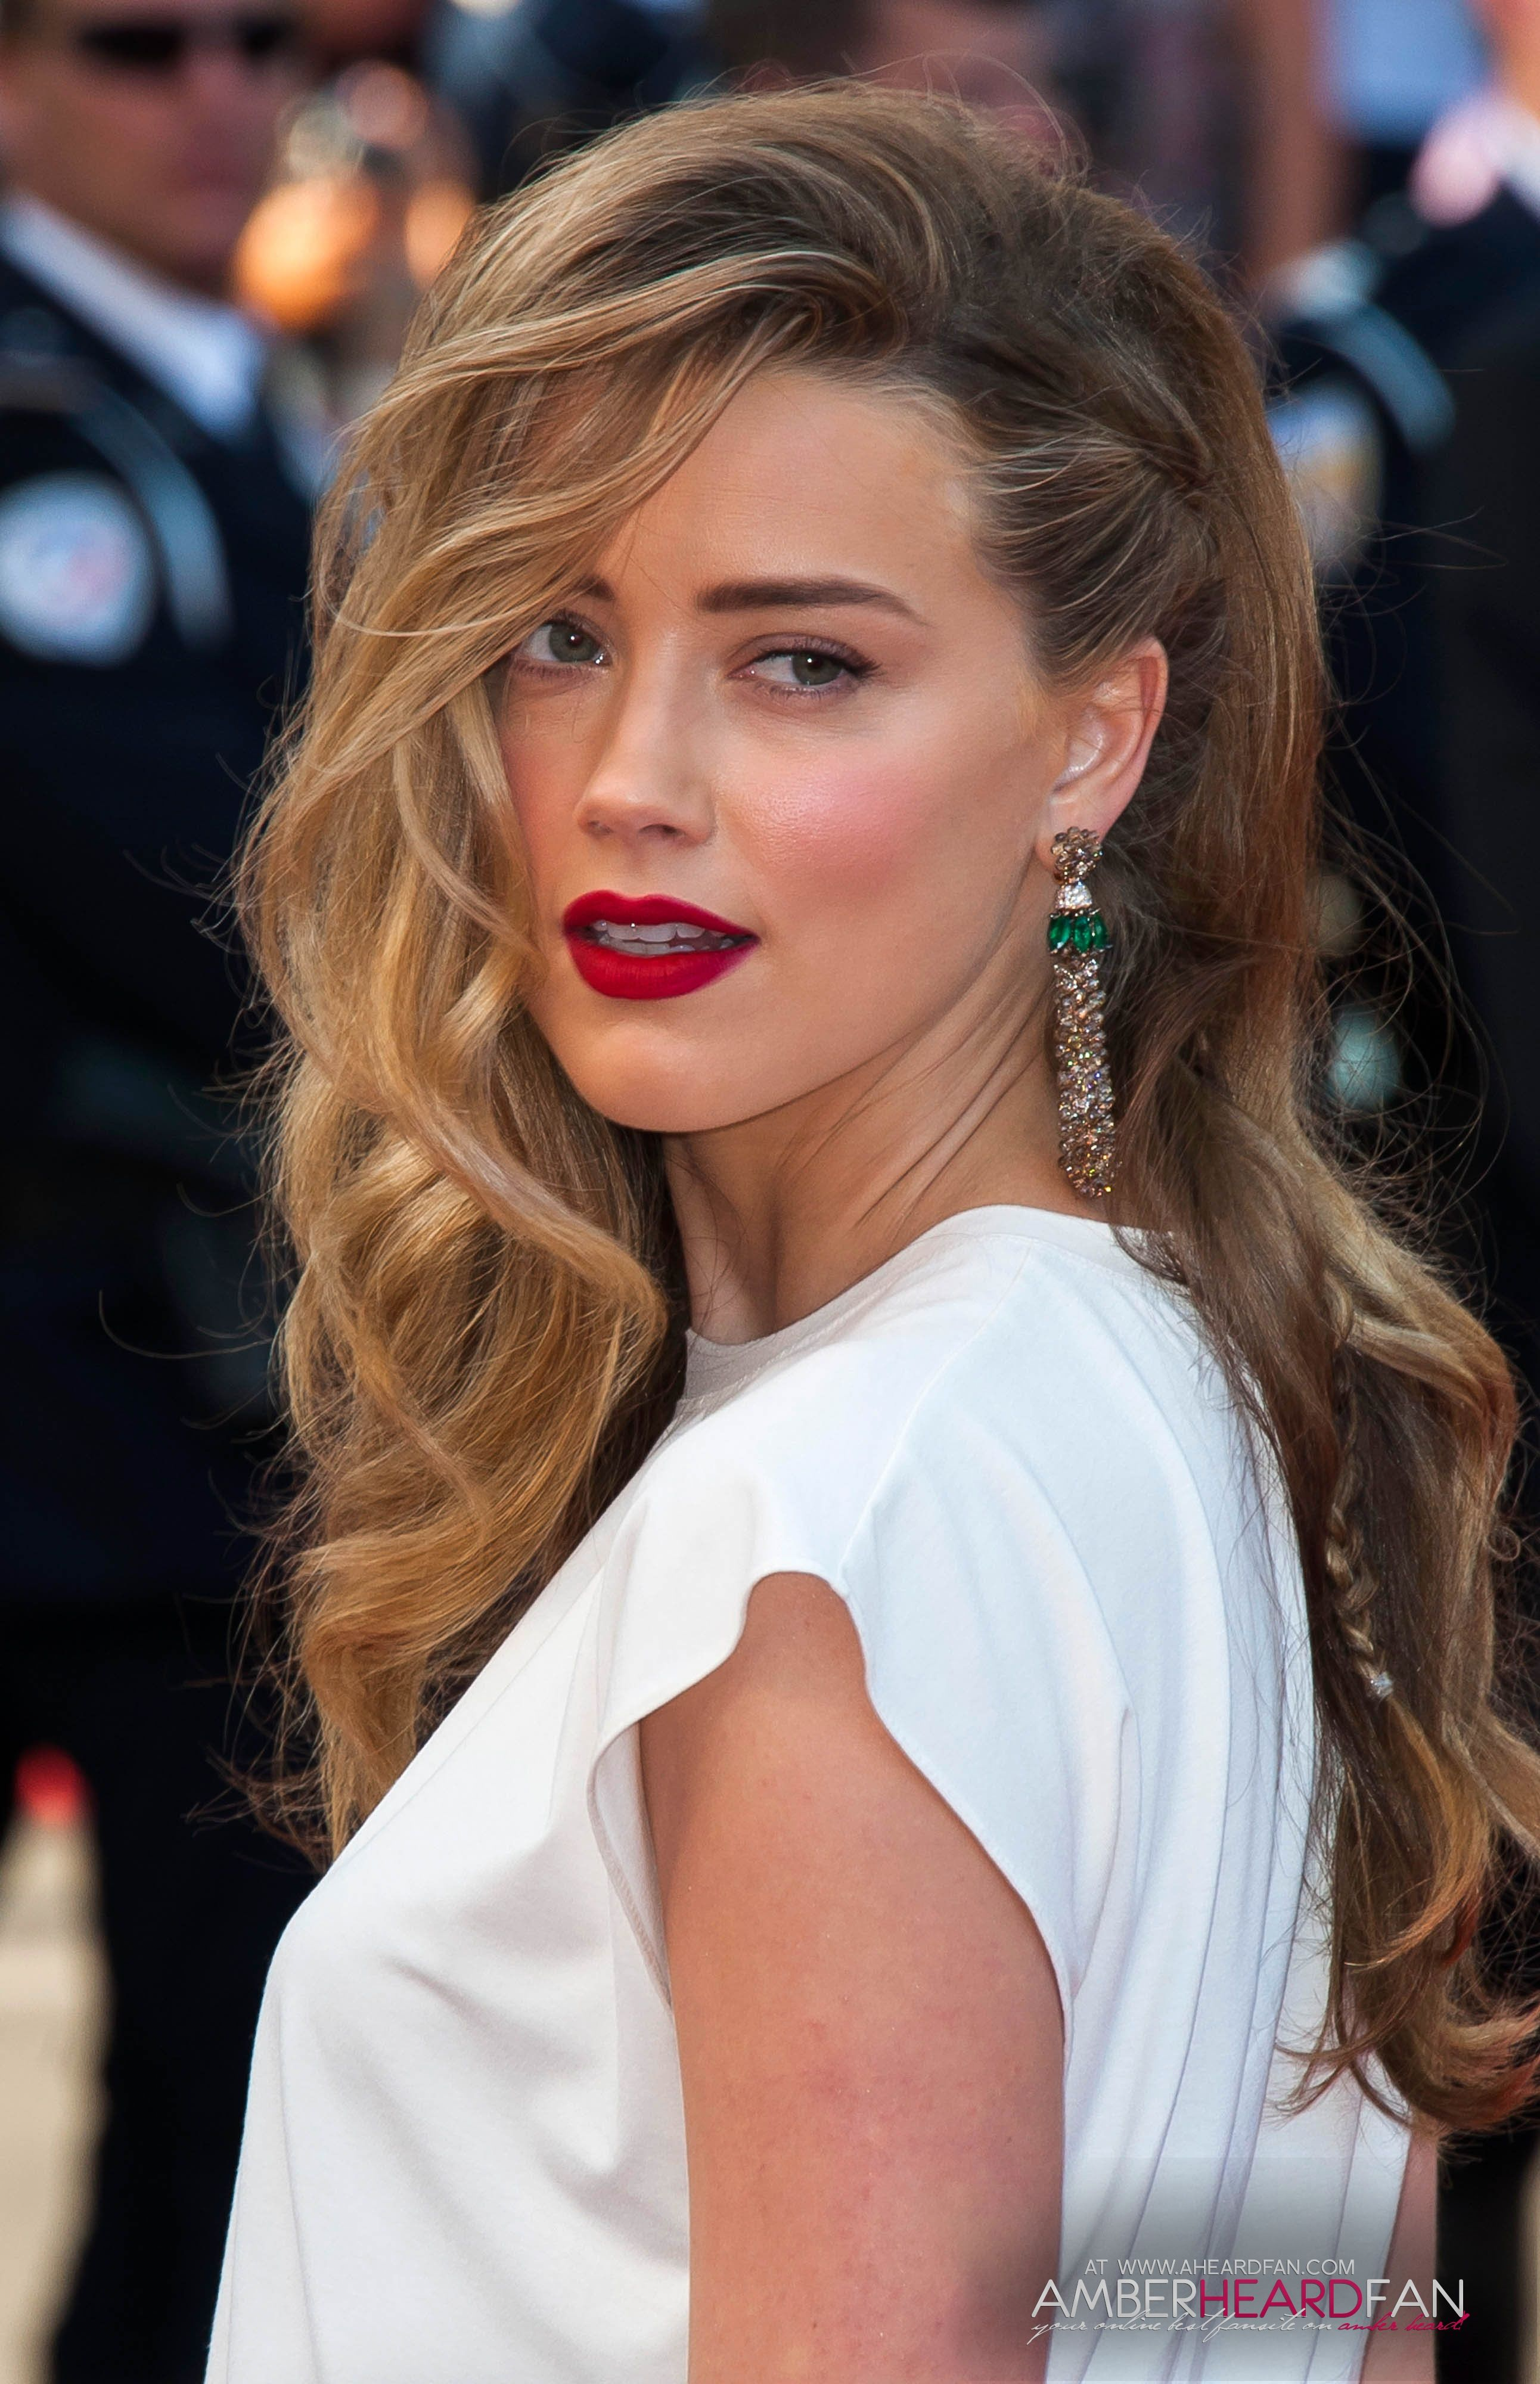 Bridal Beauty Buzz: Steal Amber Heard's Wedding-Worthy Look recommendations